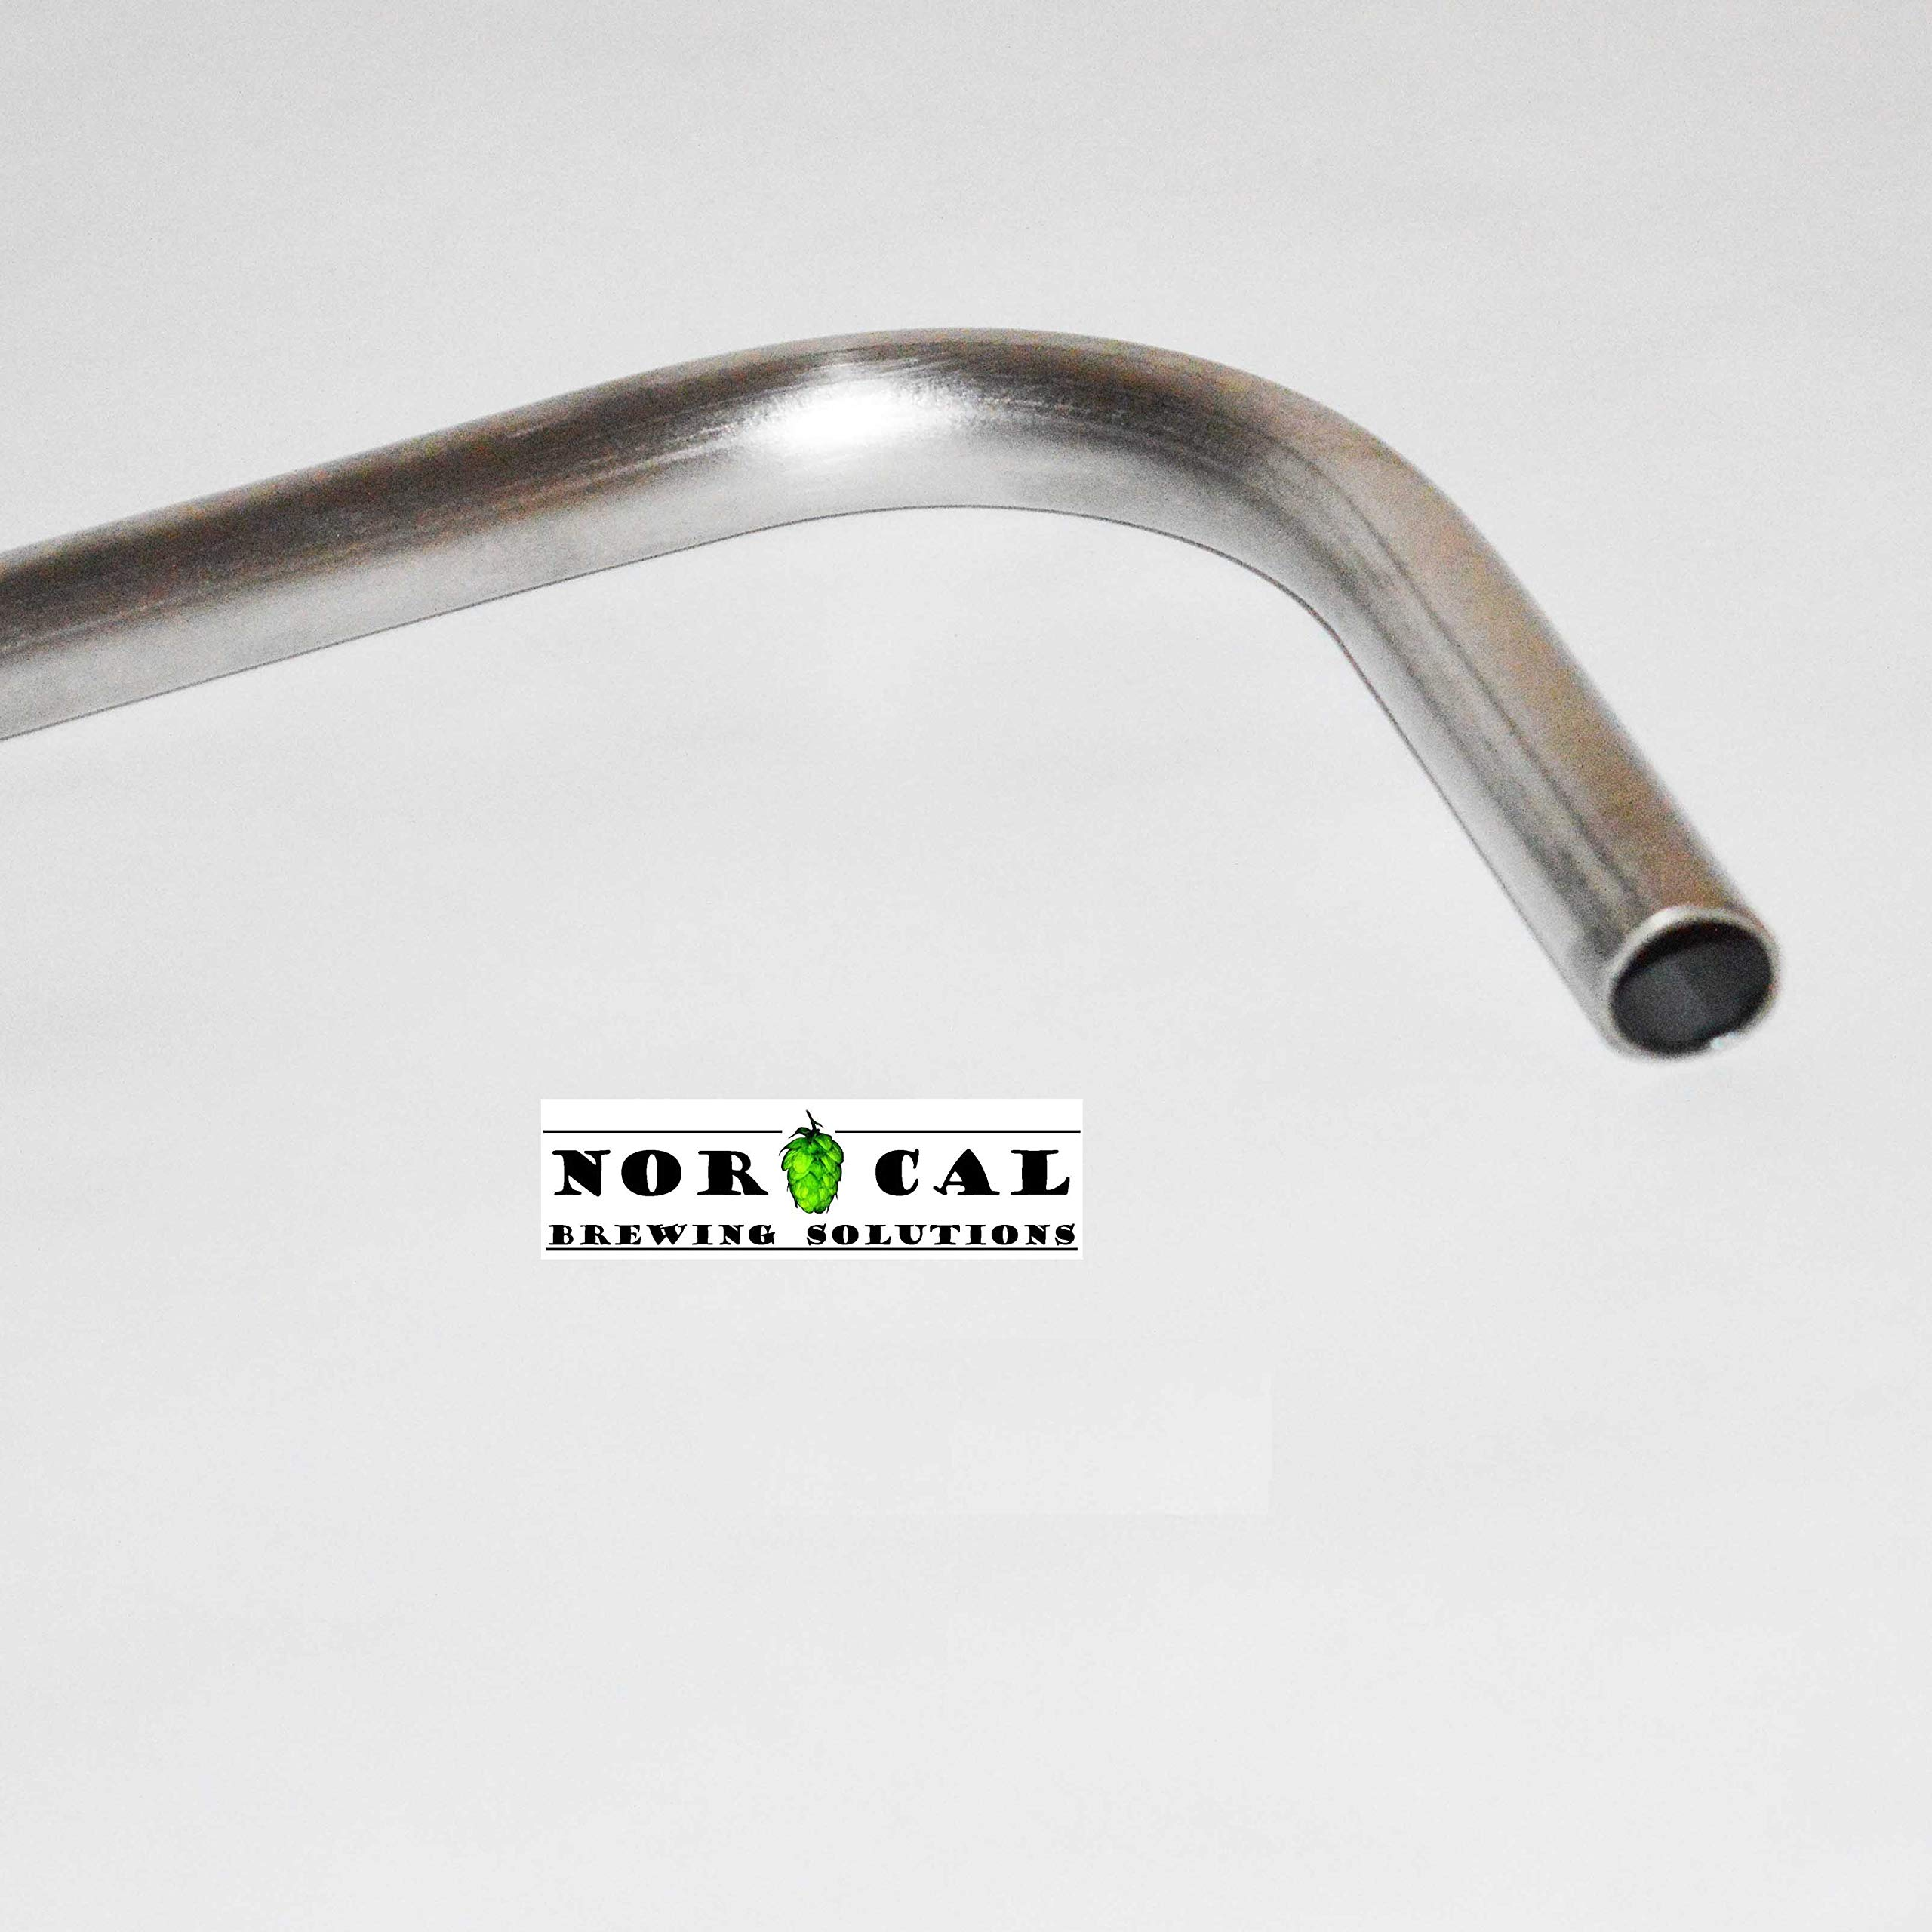 Jaybird 304 Stainless Steel 34'' Long x 1/2'' Diameter Racking Cane for Barrels by NorCal Brewing Solutions (Image #2)